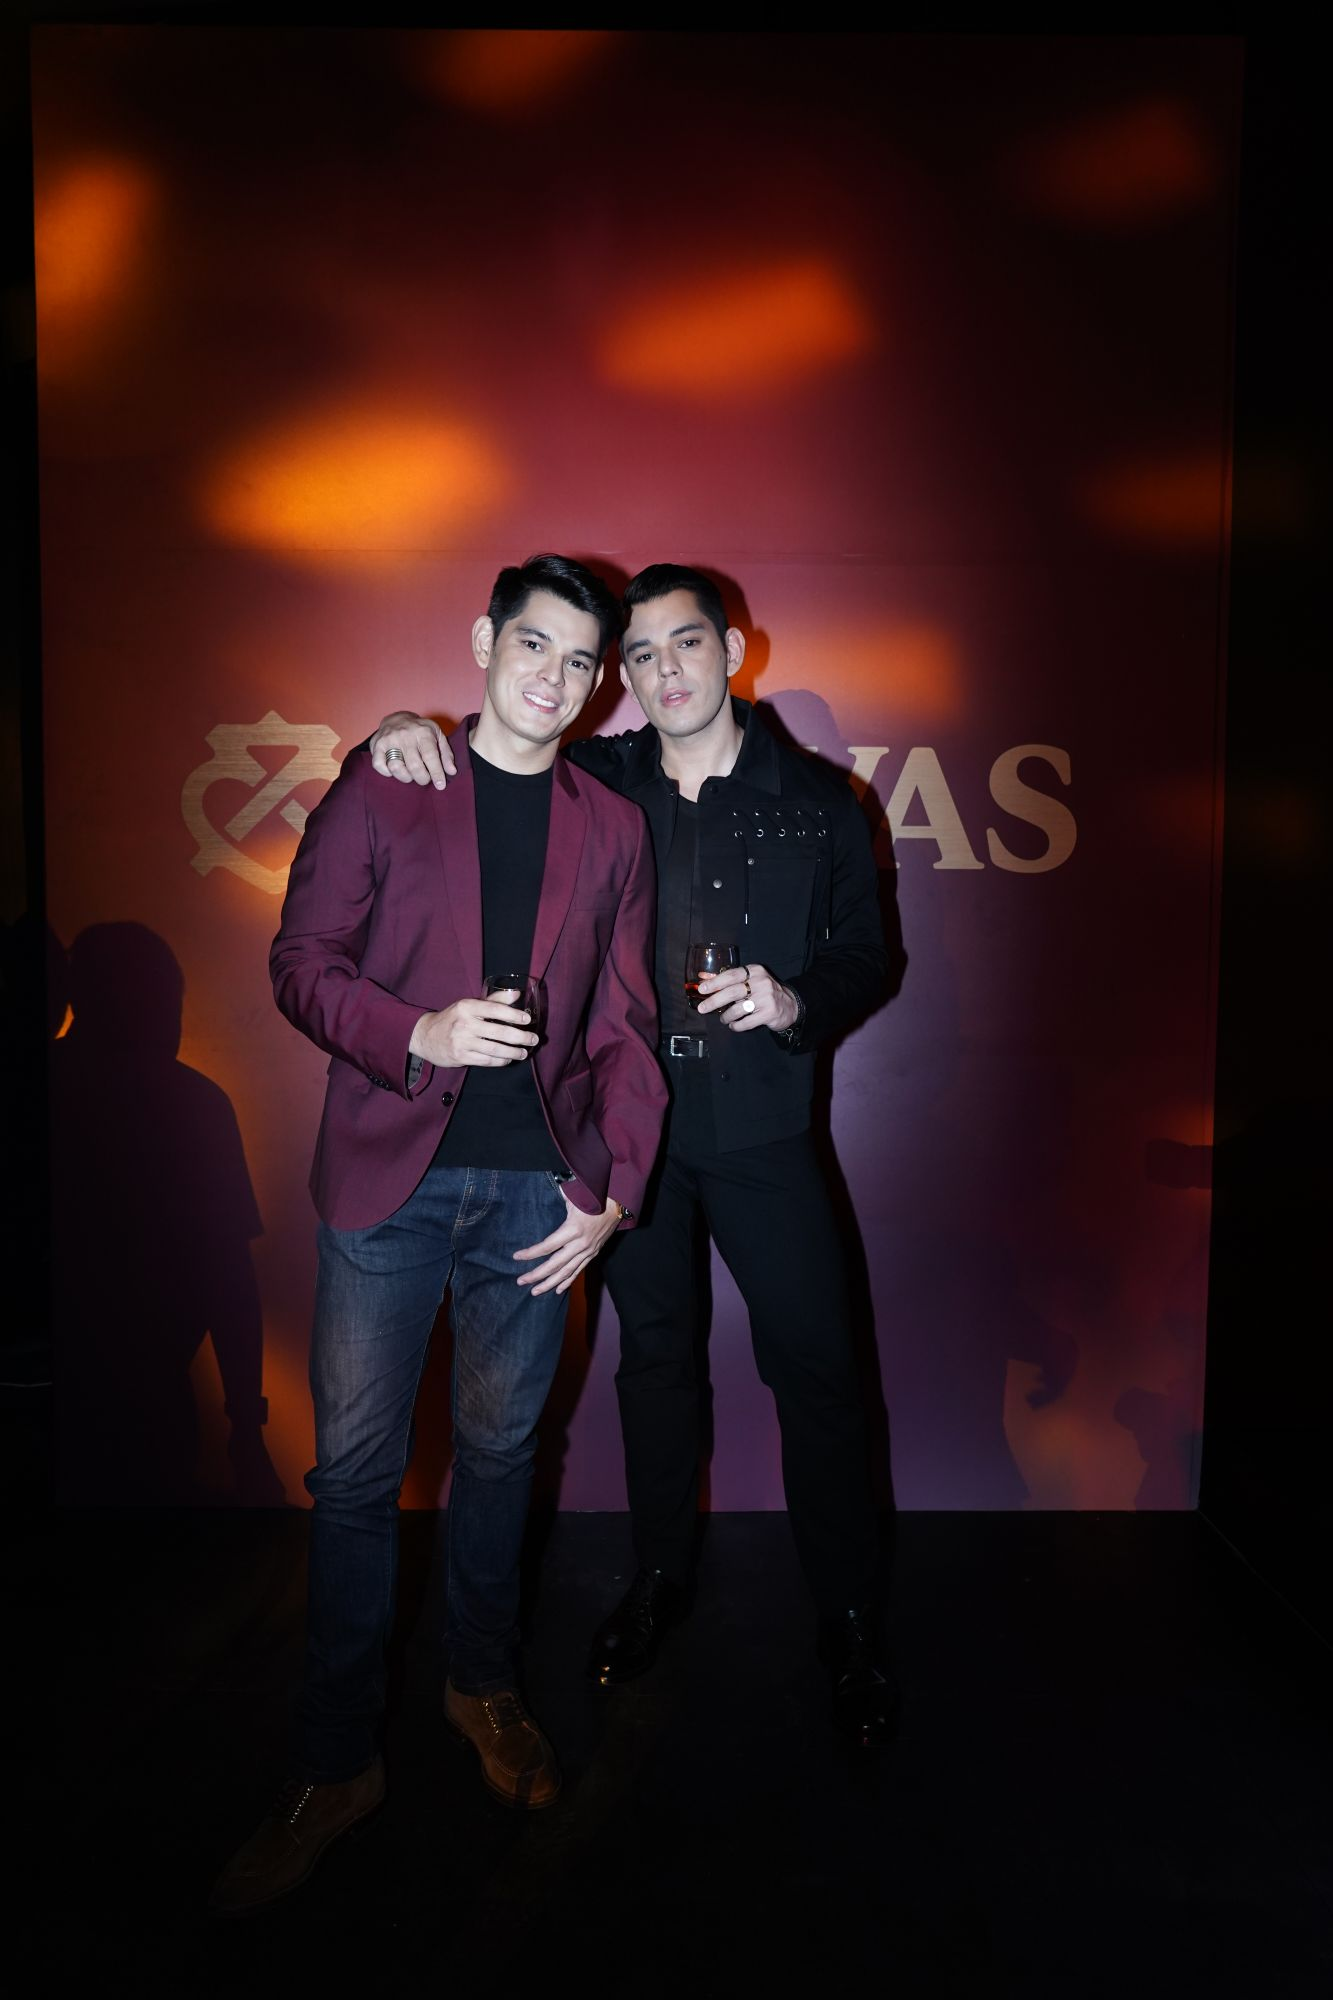 For Chivas Regal, Success Is A Blend Achieved Through Determination And Resilience photo